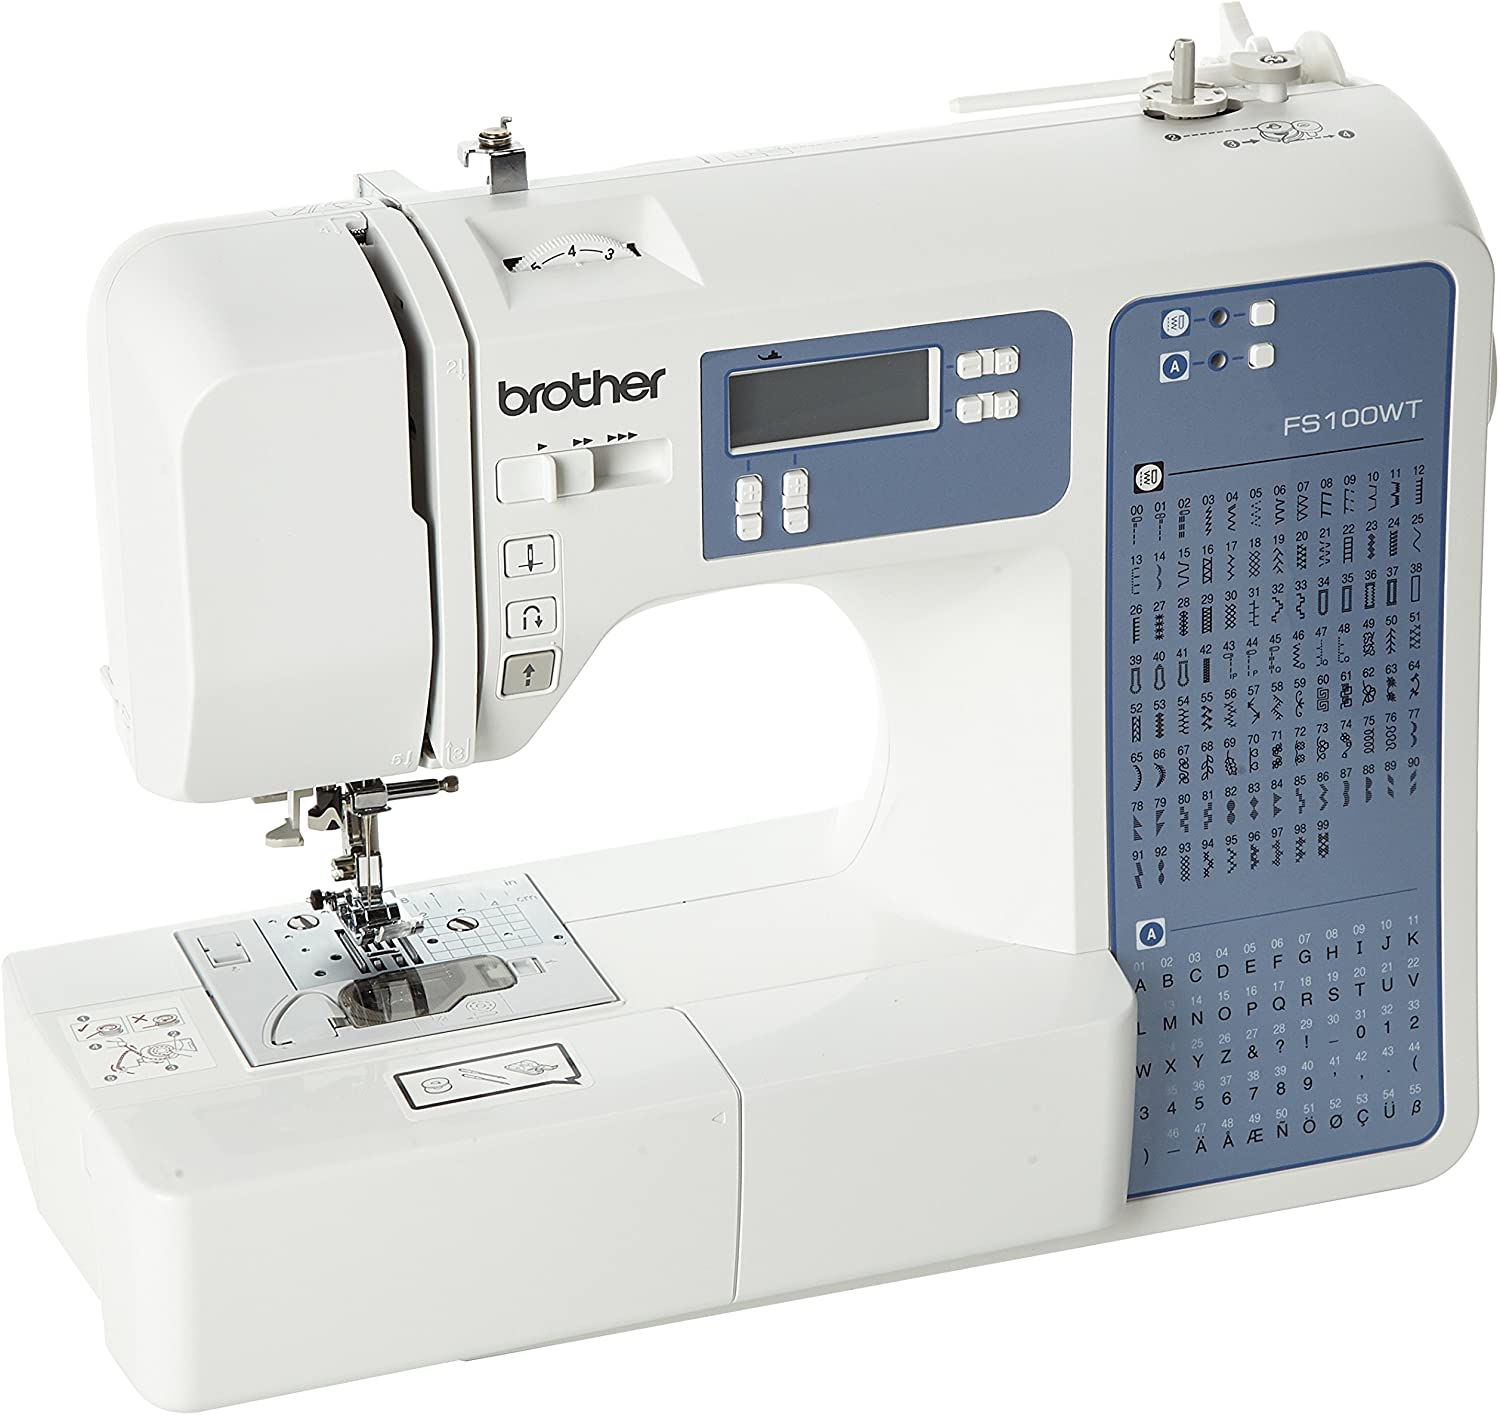 Brother FS100WT Free Motion Embroidery/Sewing and Quilting Machine